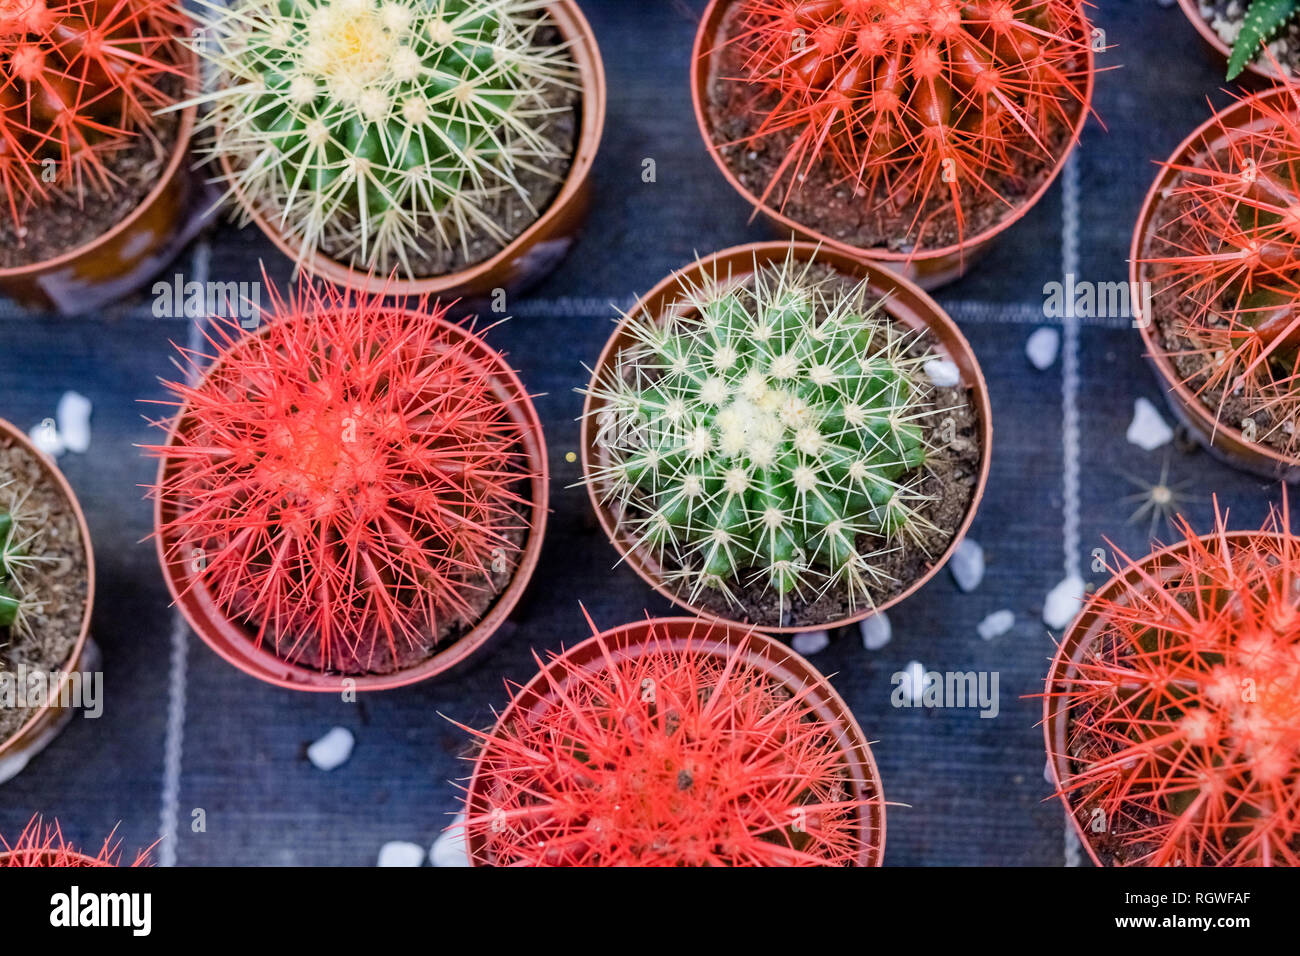 Cactus Plants For Sale High Resolution Stock Photography And Images Alamy